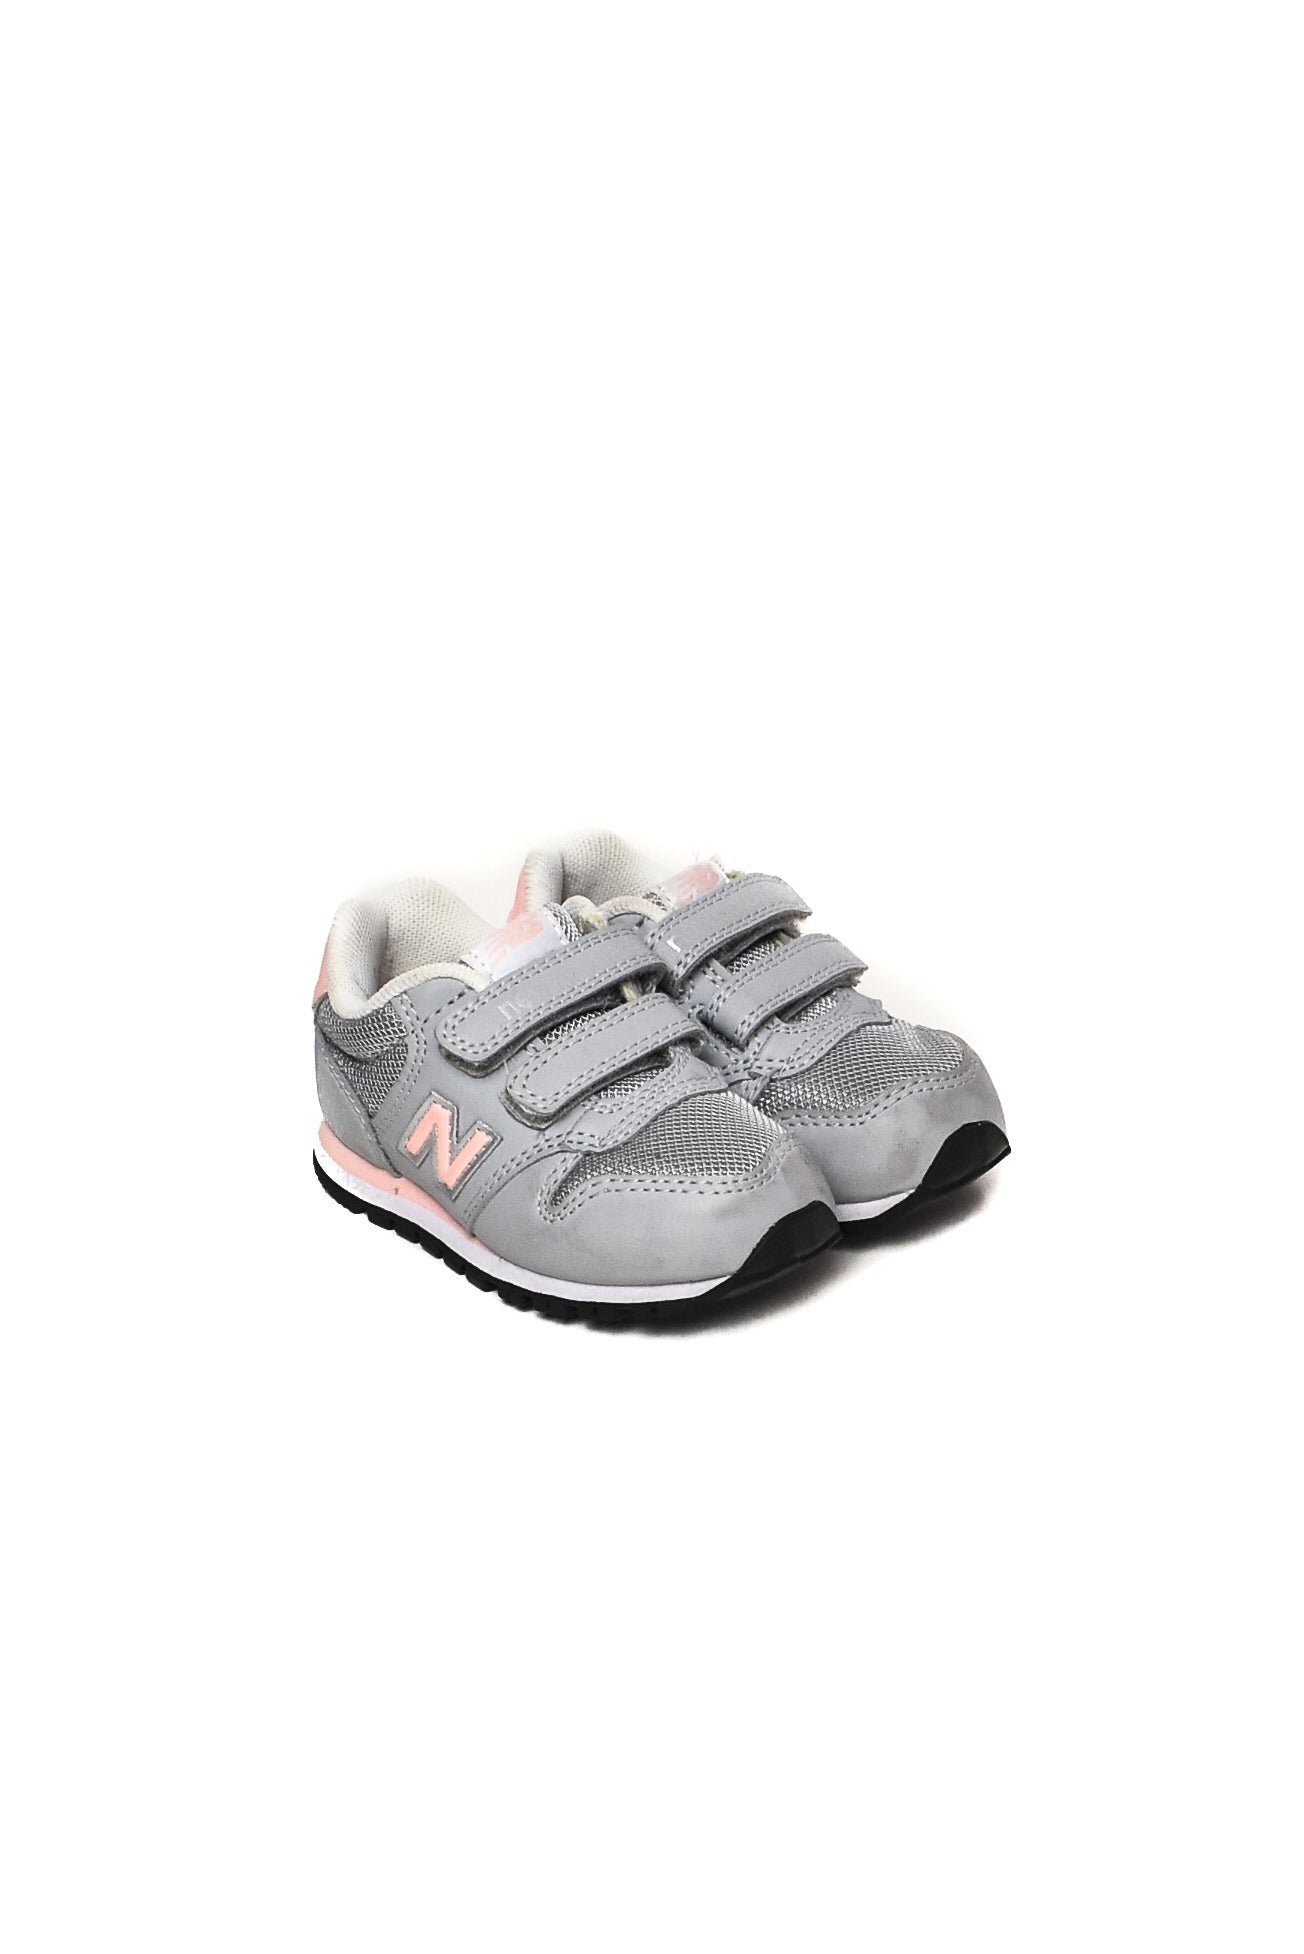 New Balance at up to 90% off at Retykle